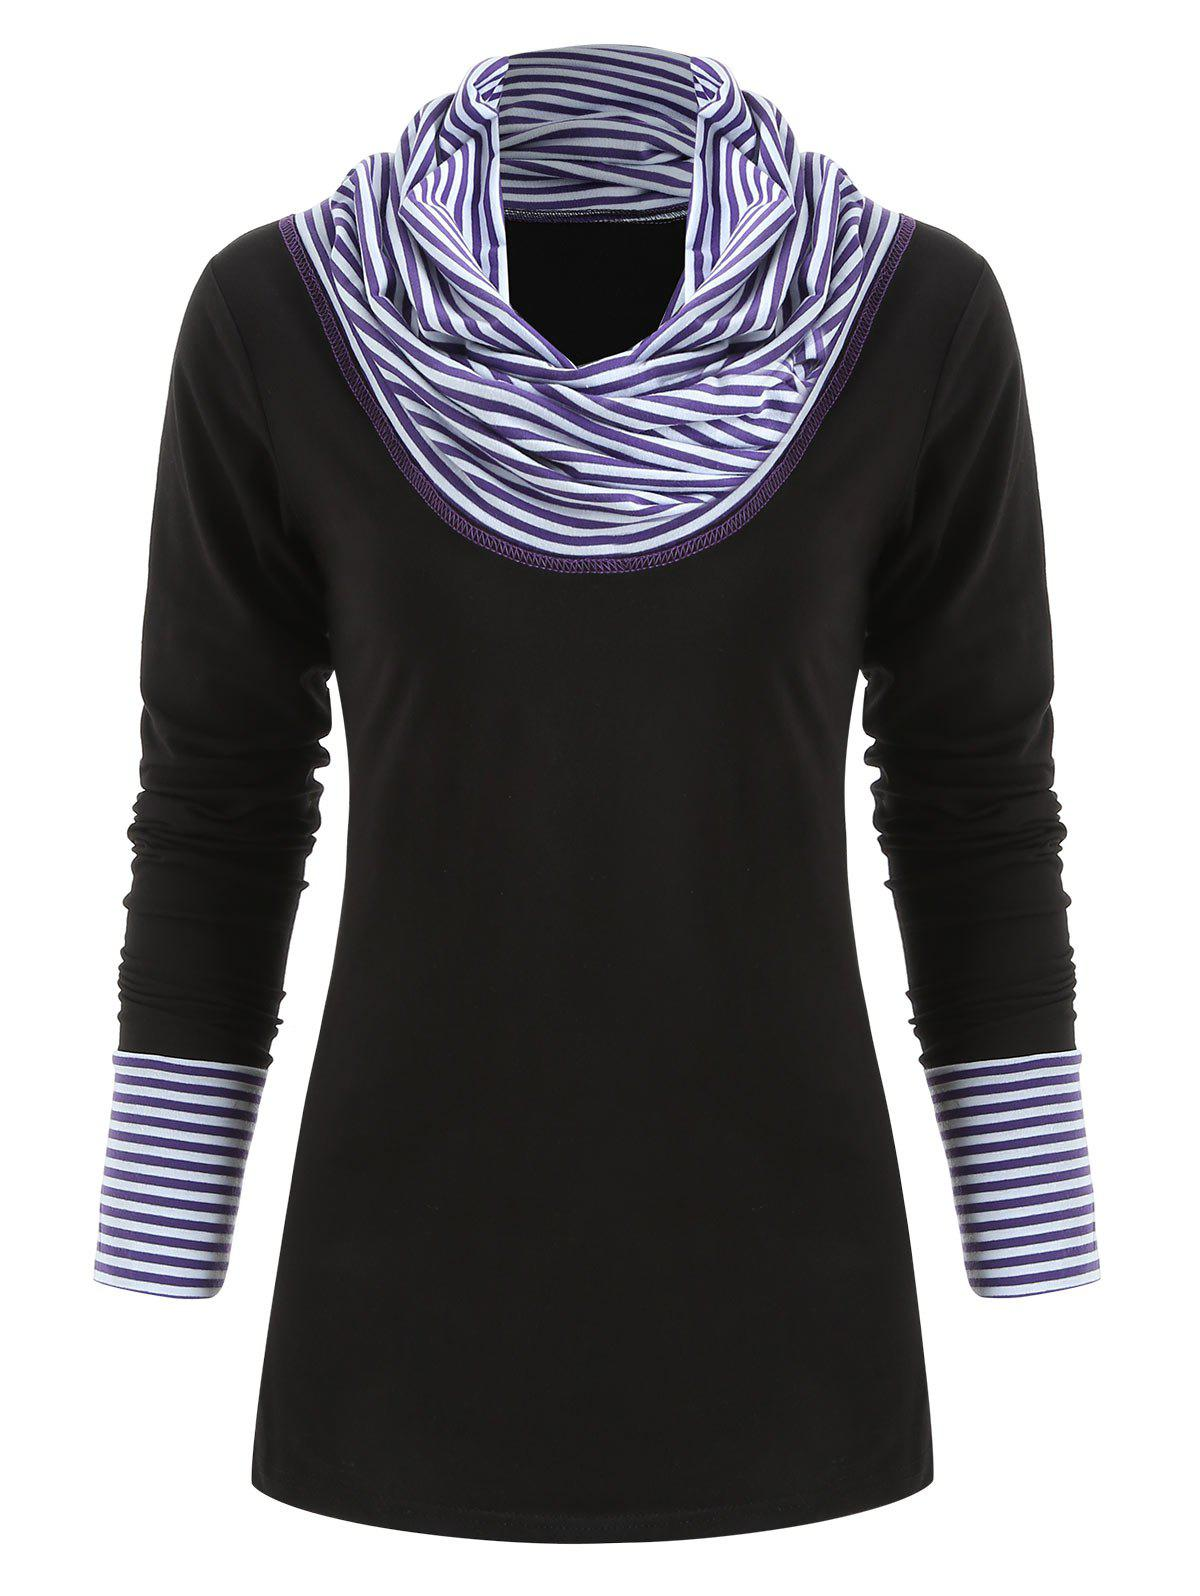 New Striped Panel Long Sleeve Top